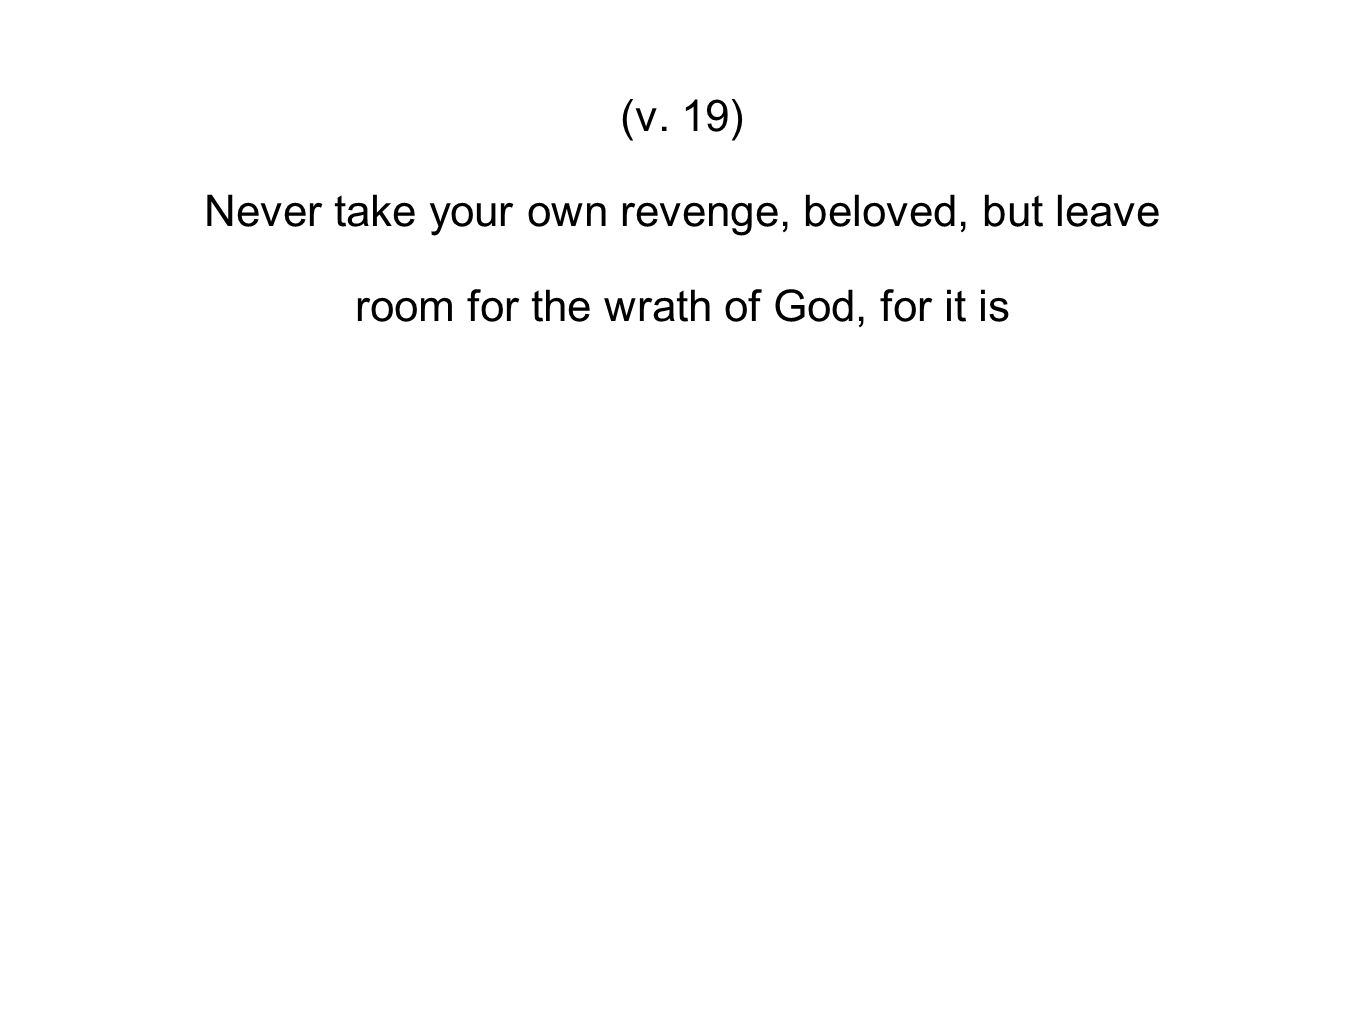 (v. 19) Never take your own revenge, beloved, but leave room for the wrath of God, for it is